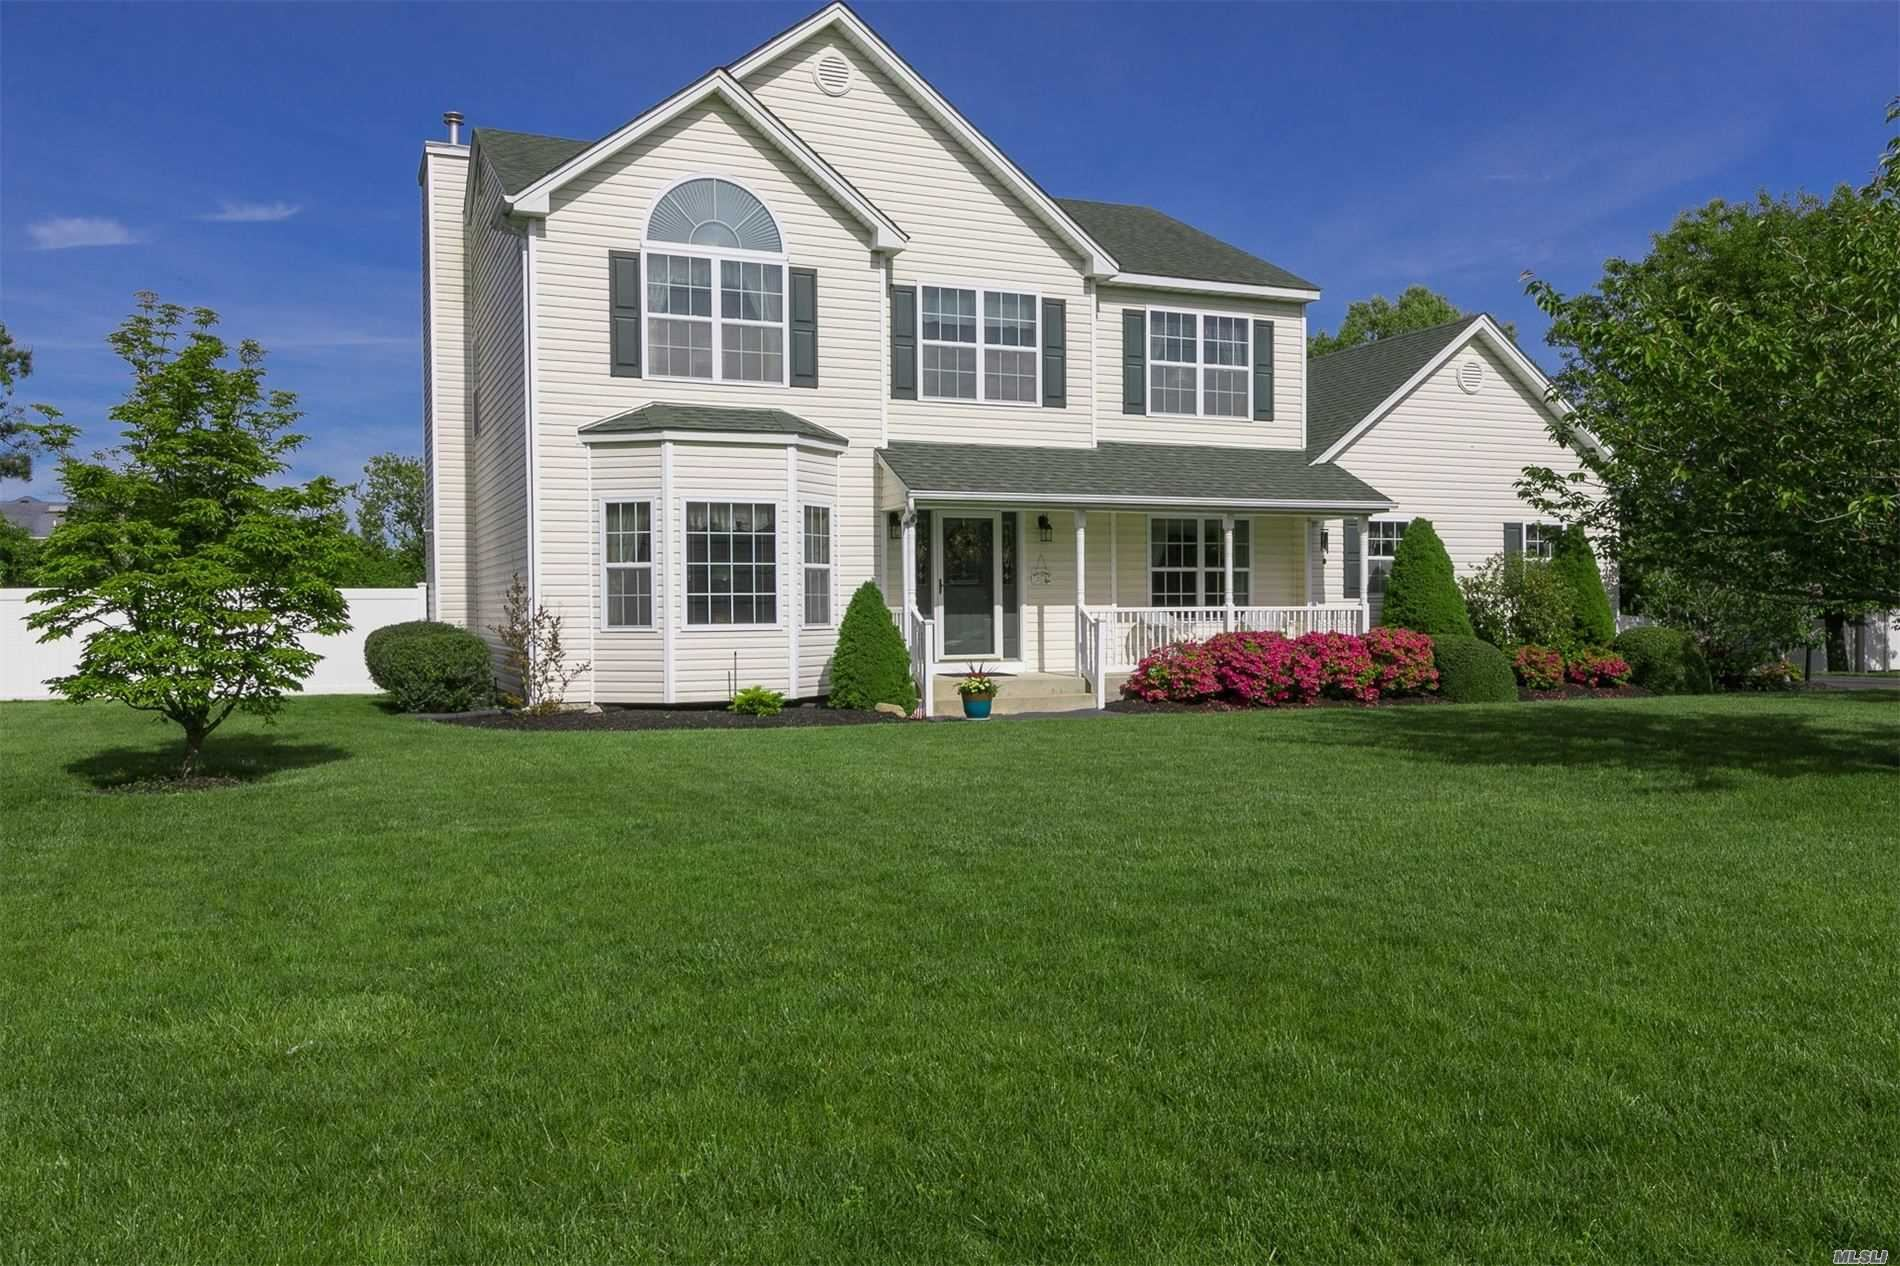 7 Barberry Lane, Center Moriches, NY 11934 - MLS#: 3204007